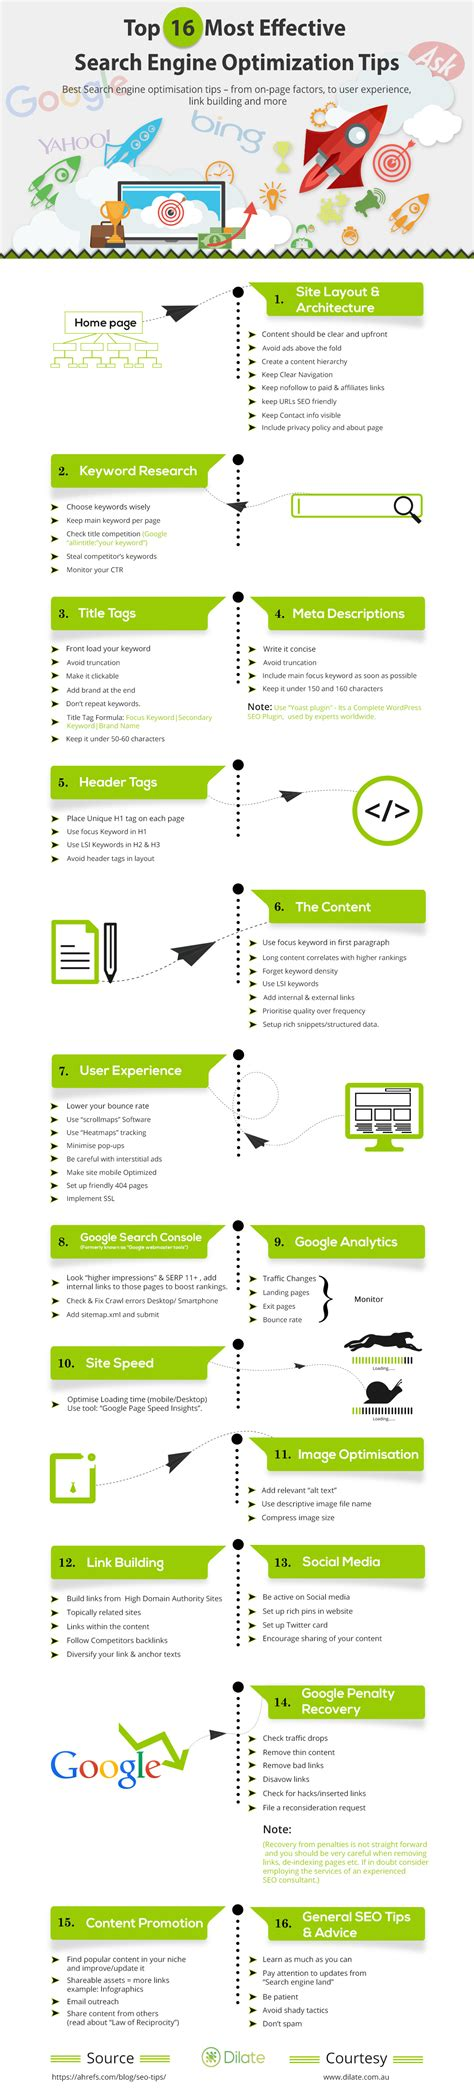 Best Search 2016 Effective Search Engine Optimization Tips Infographic Everyday Tech